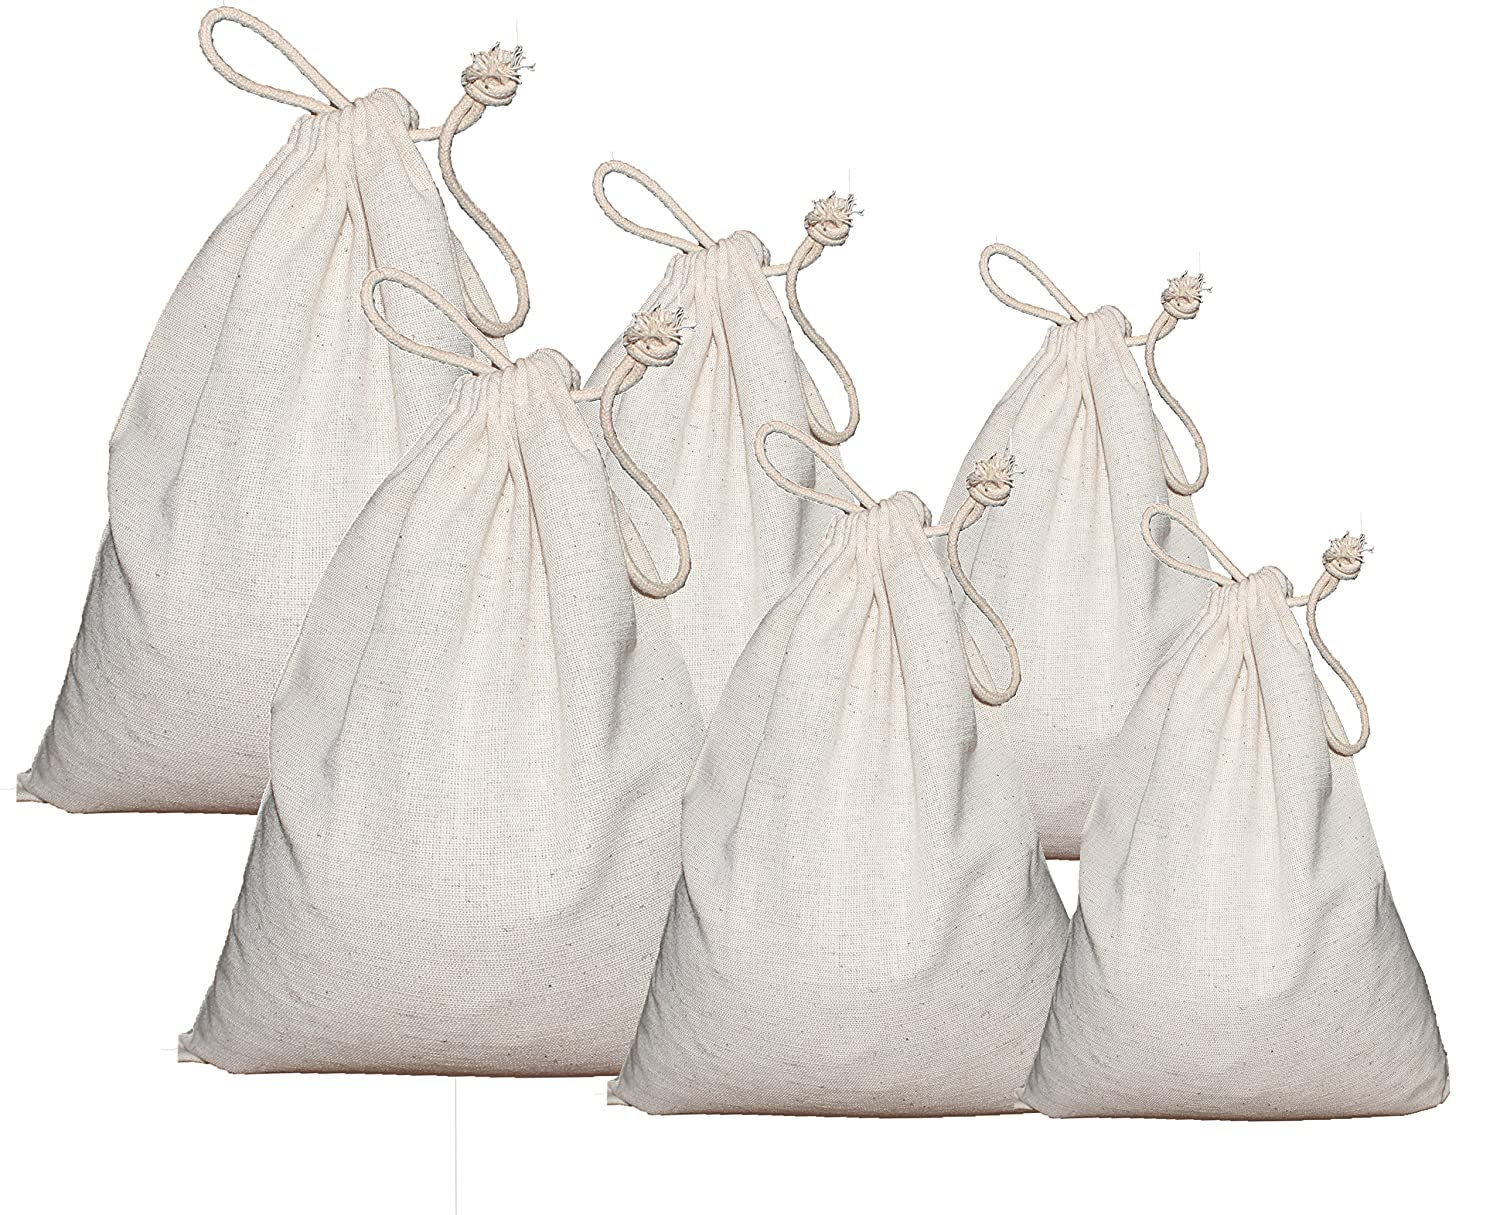 FlaxコットンGrocery Bag 6pk B073S7BY4Y